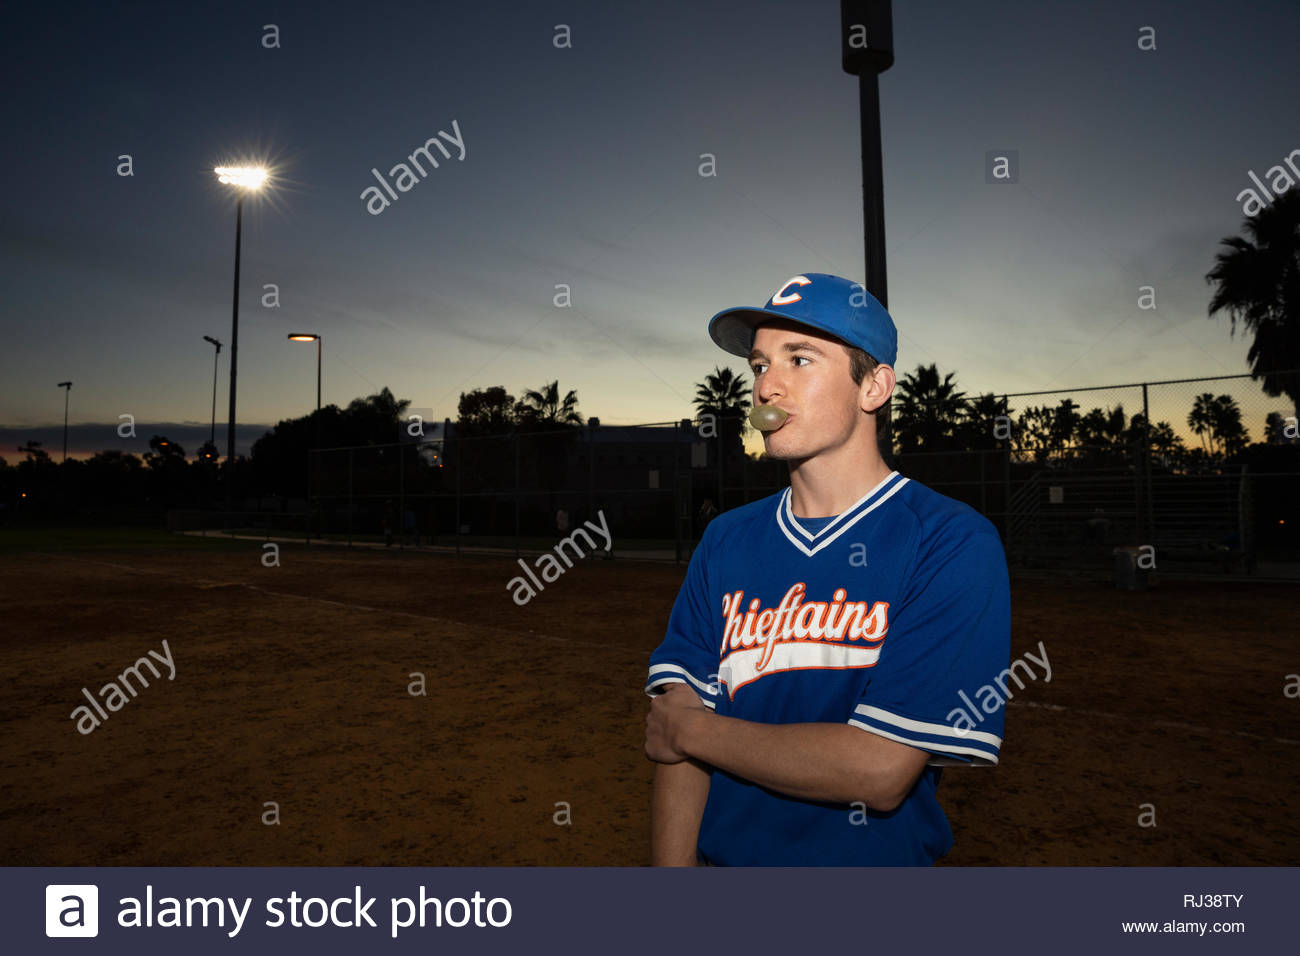 Joueur de baseball blowing bubble gum bubble sur terrain de nuit Photo Stock